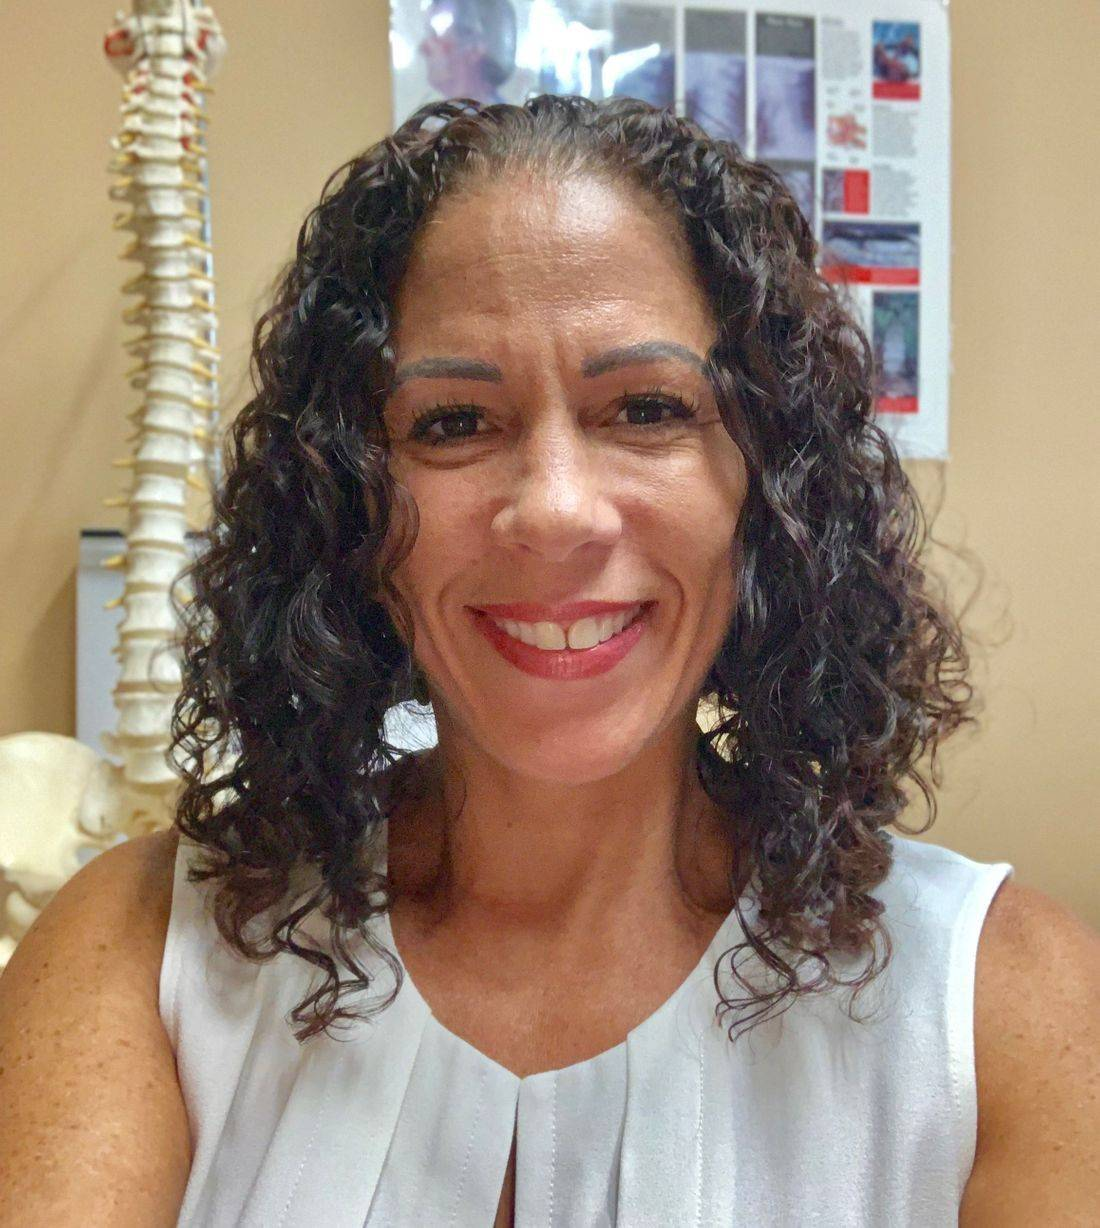 Dr Jennifer Royer Thompson, Chiropractor at Back to Health